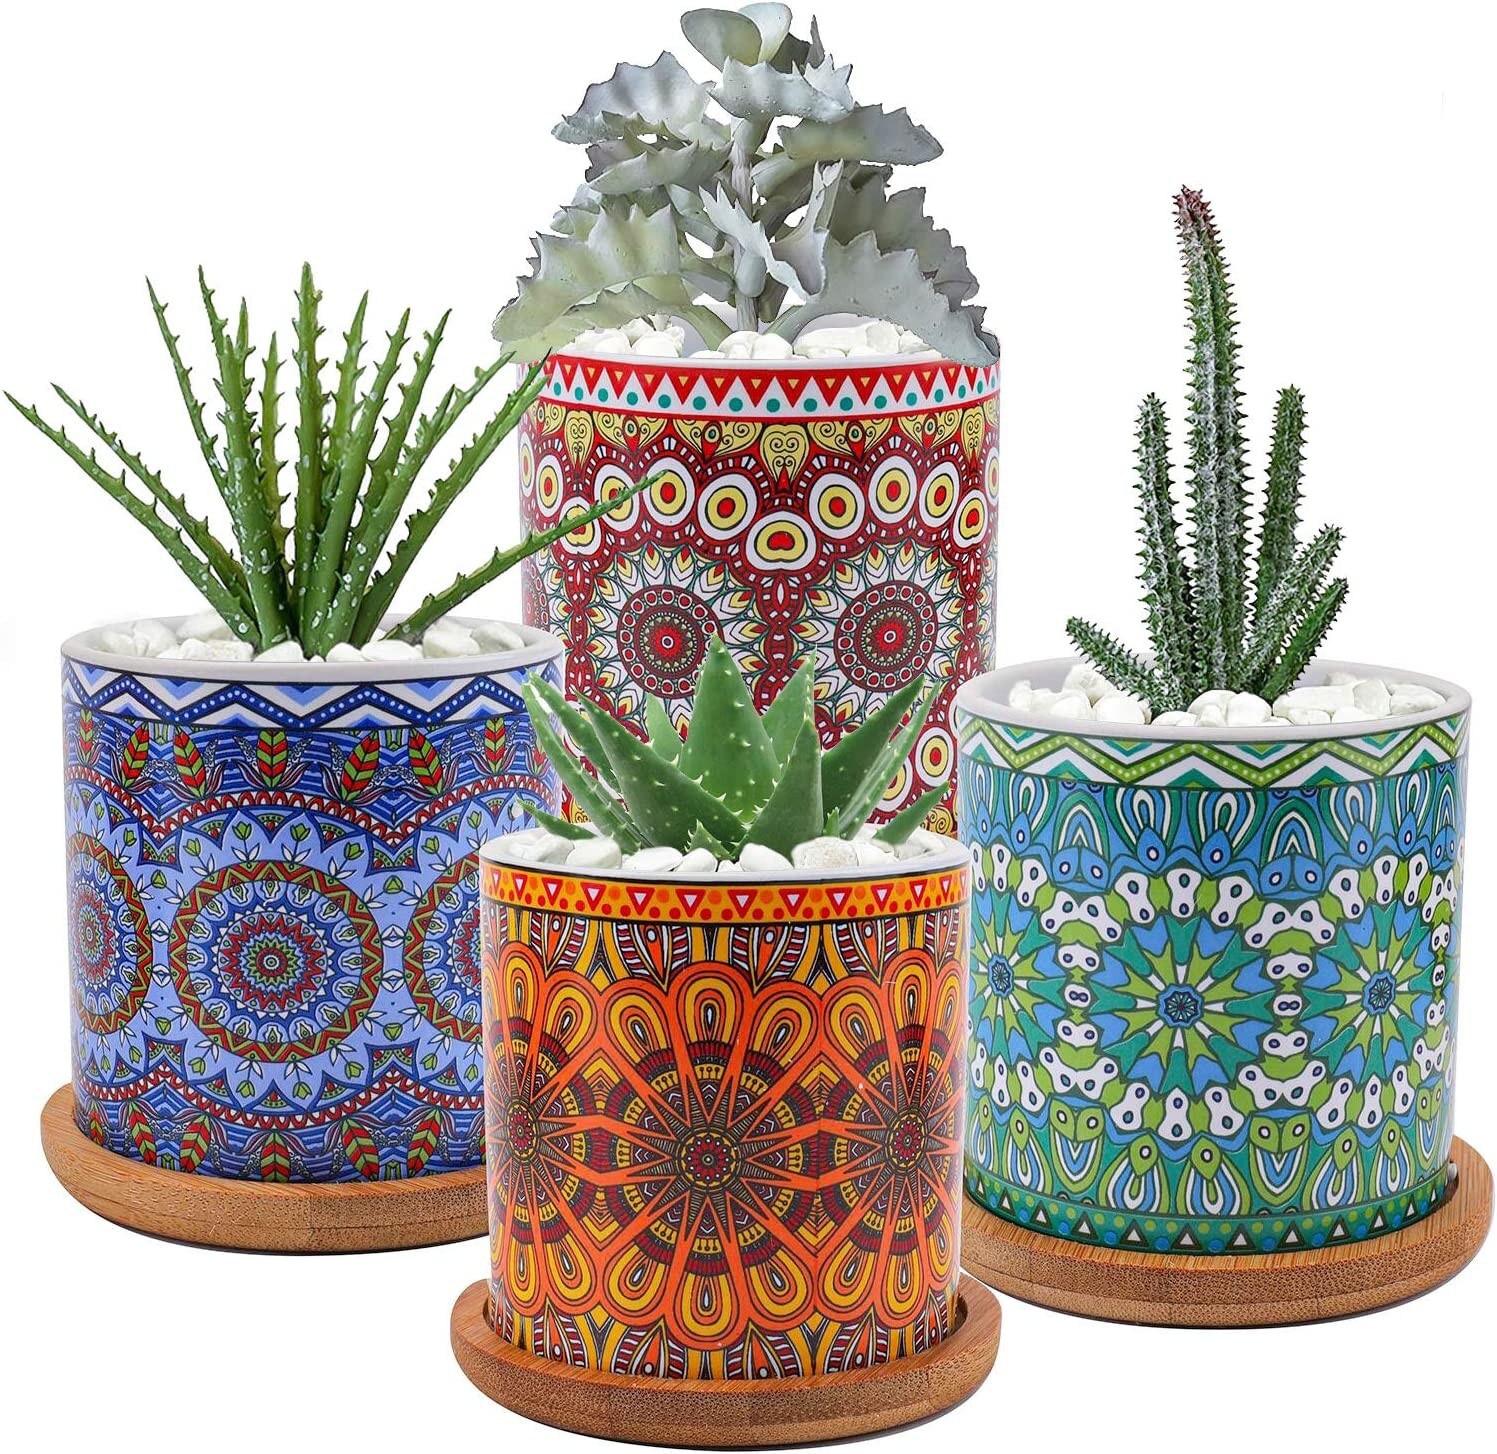 Yesland Succulent Plant Pots with Bamboo Tray, 4 Pack Ceramic Mandalas Pattern Cylinder Planter, for Home Garden Office Decoration